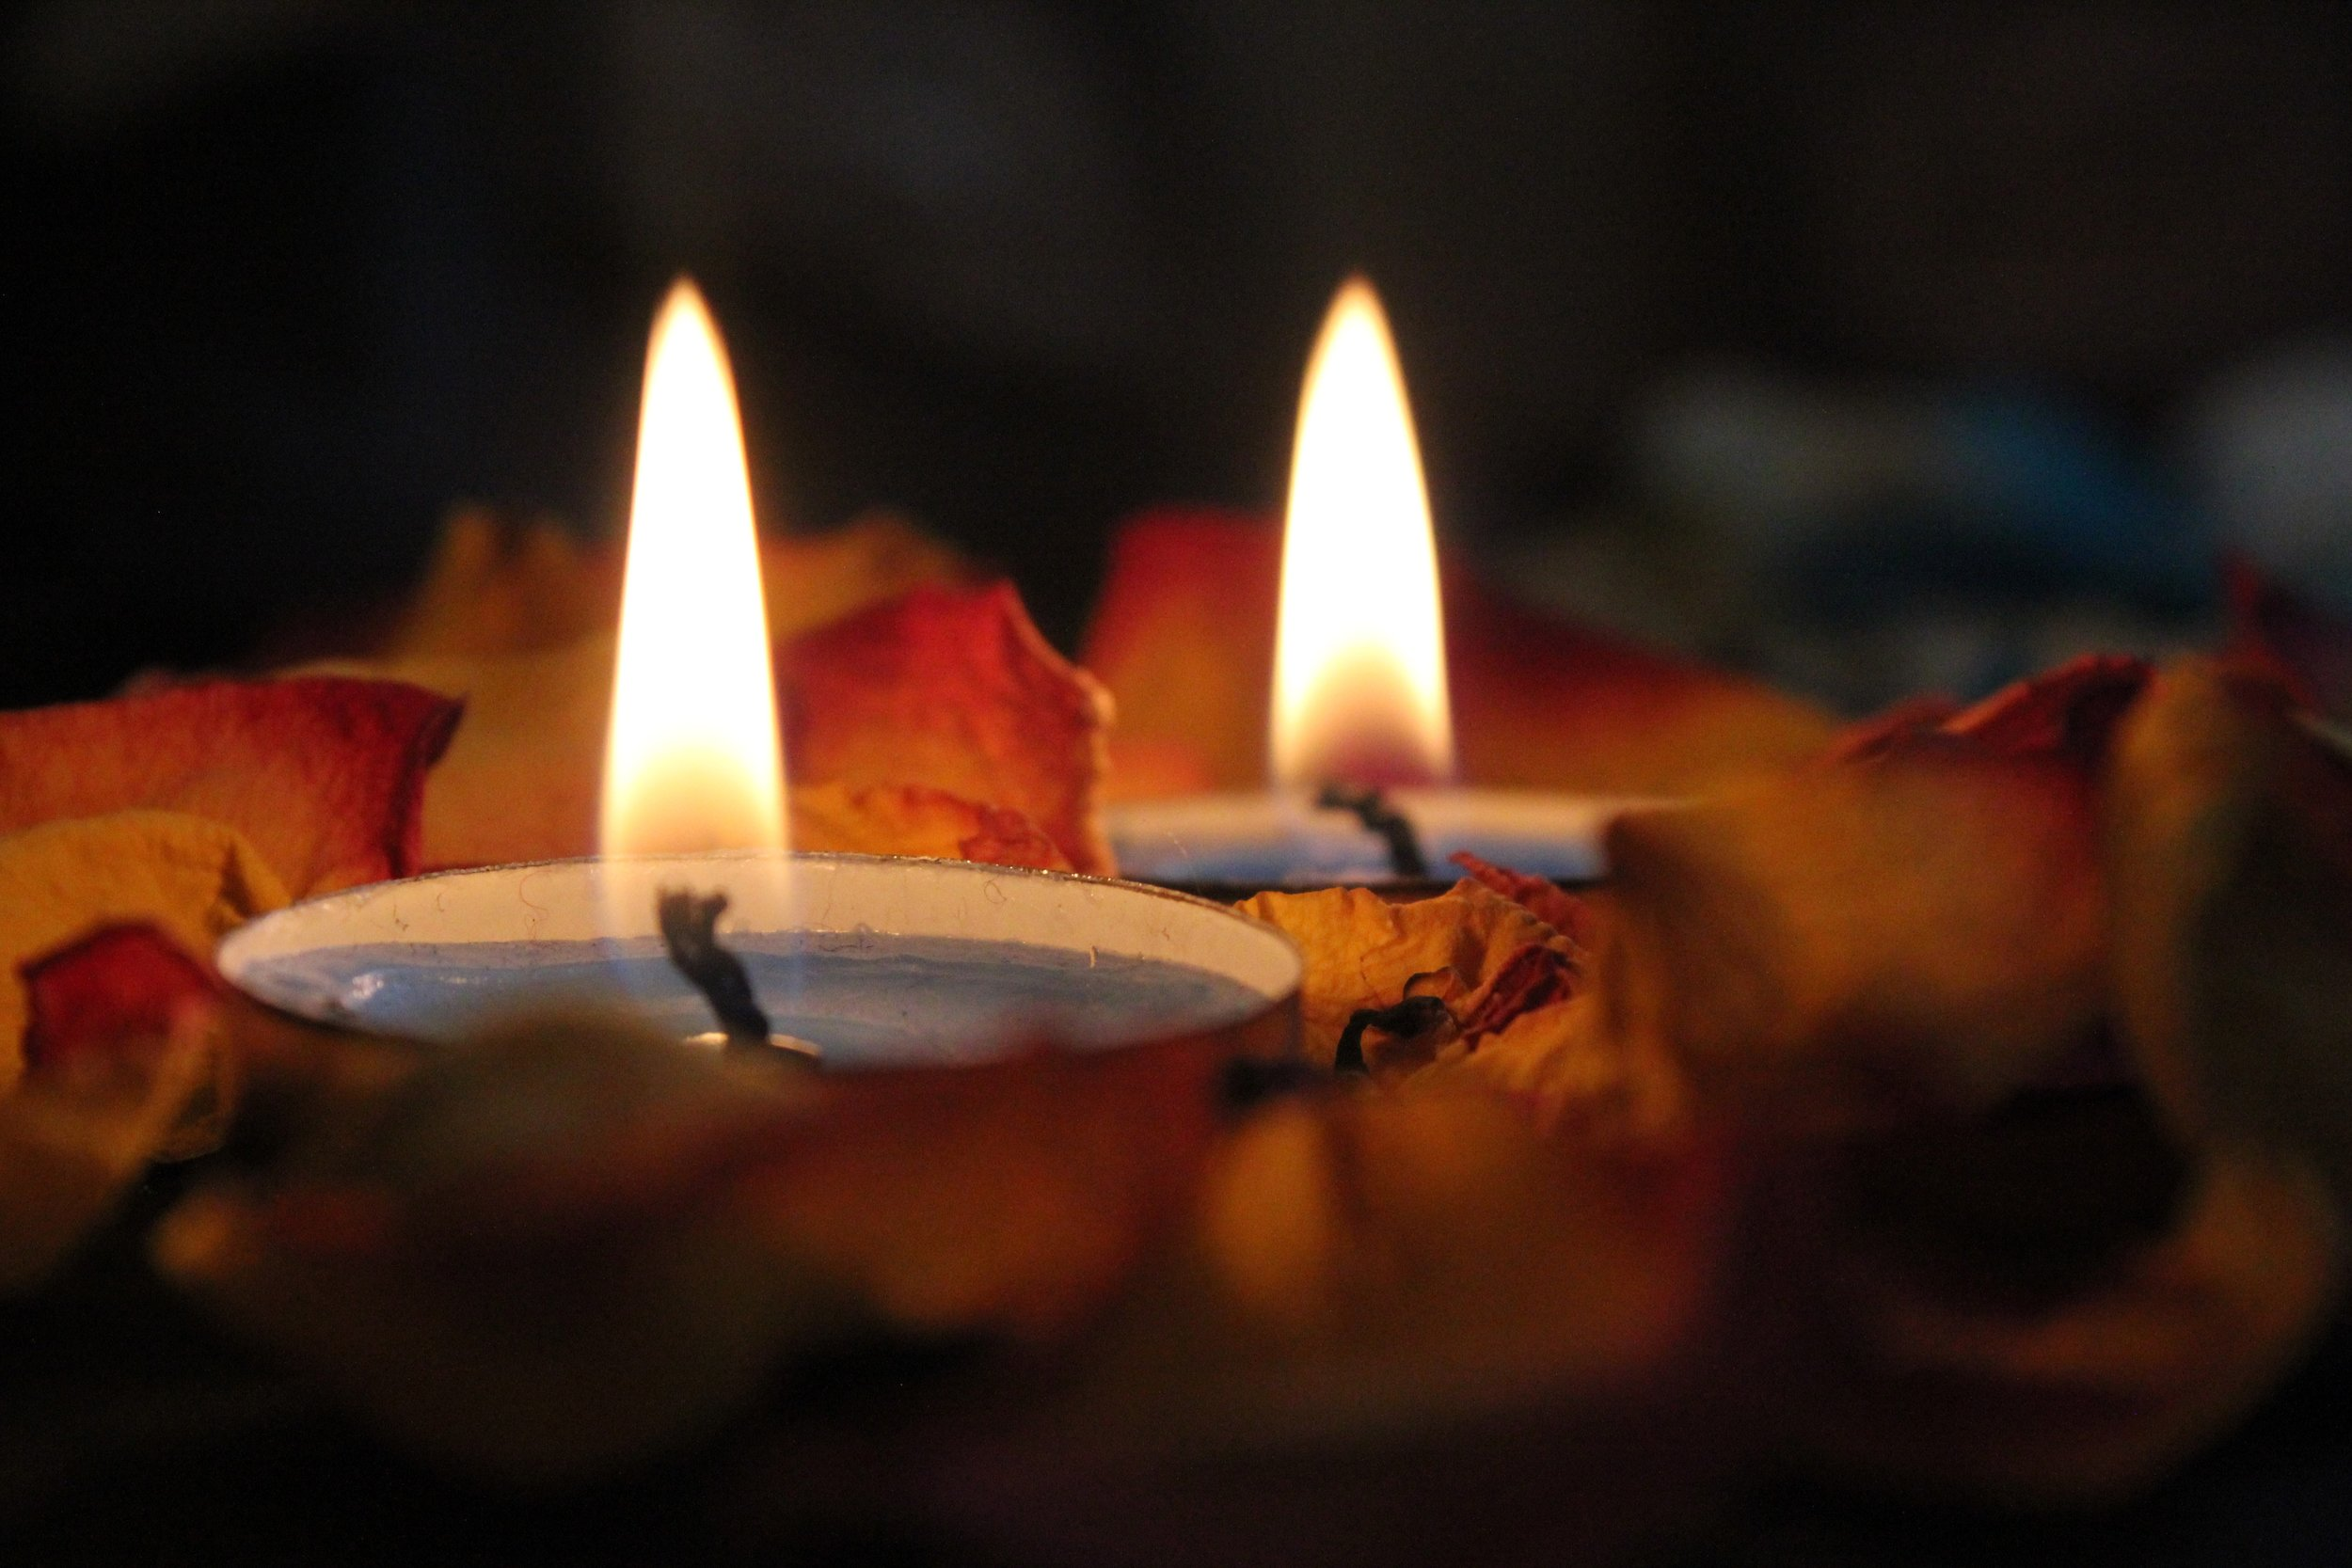 burning-candlelight-candles-1006540.jpg